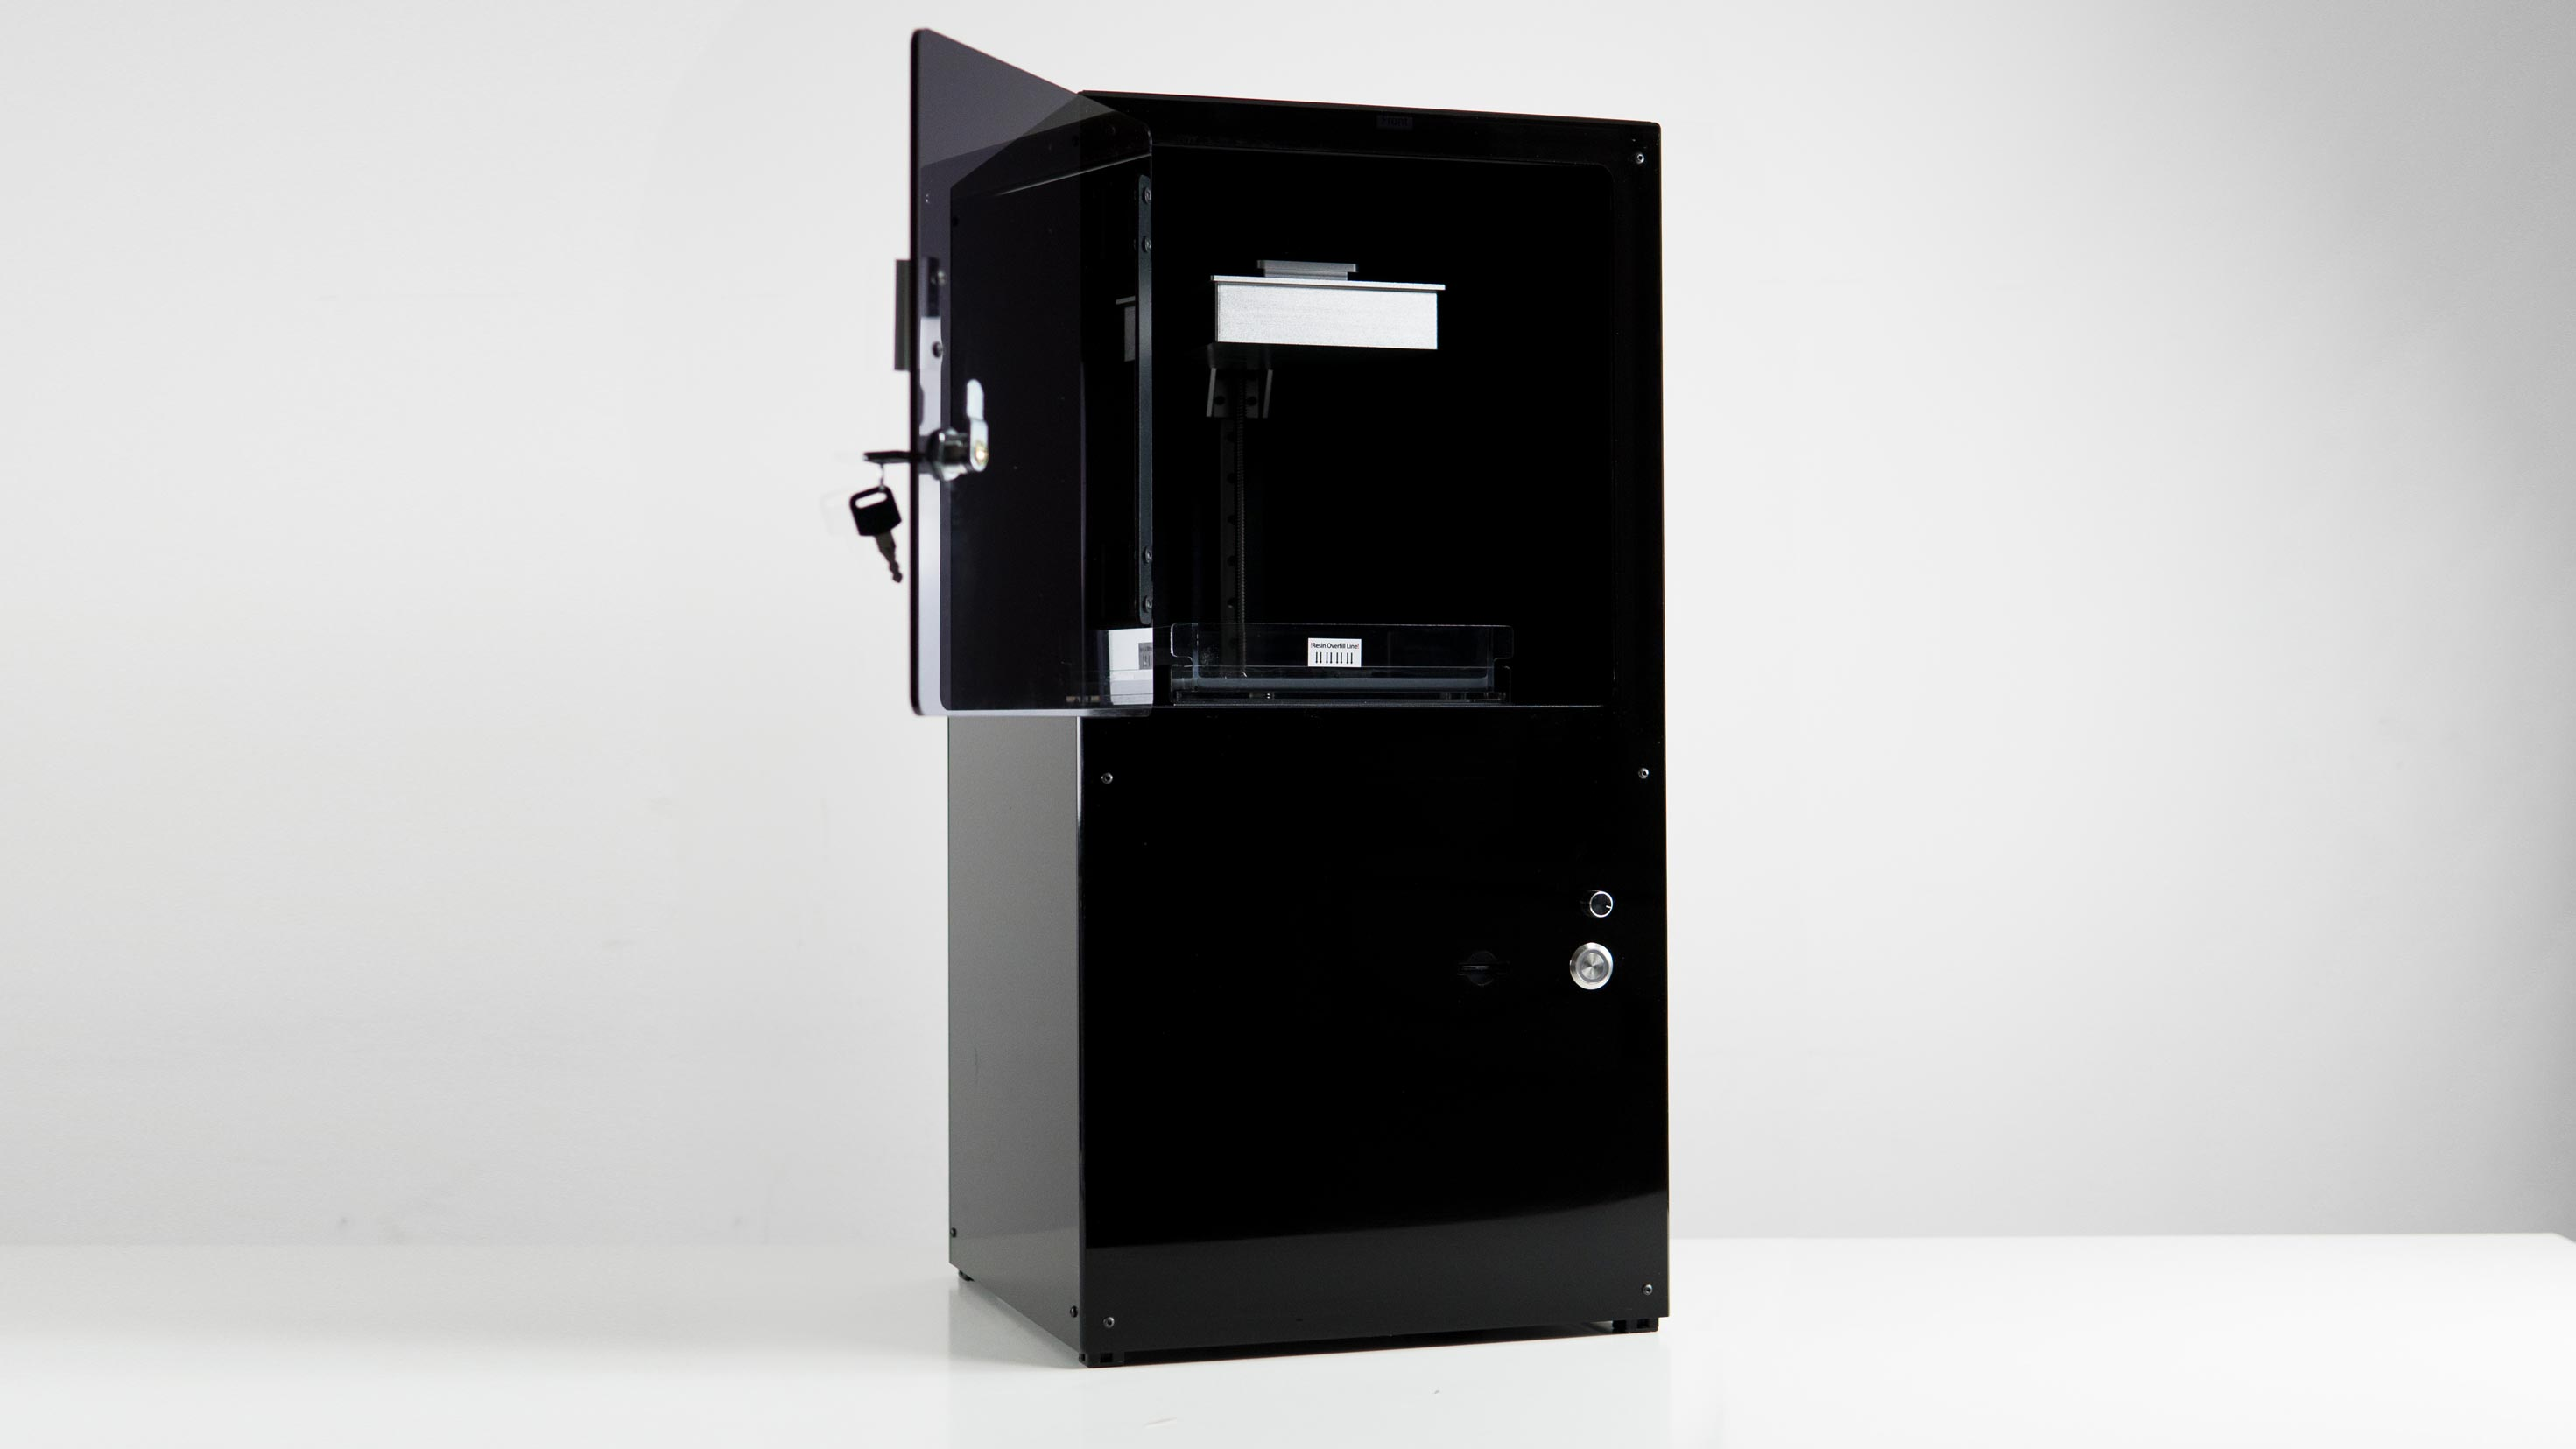 Peopoly Moai Review: Great Value Resin 3D Printer | All3DP